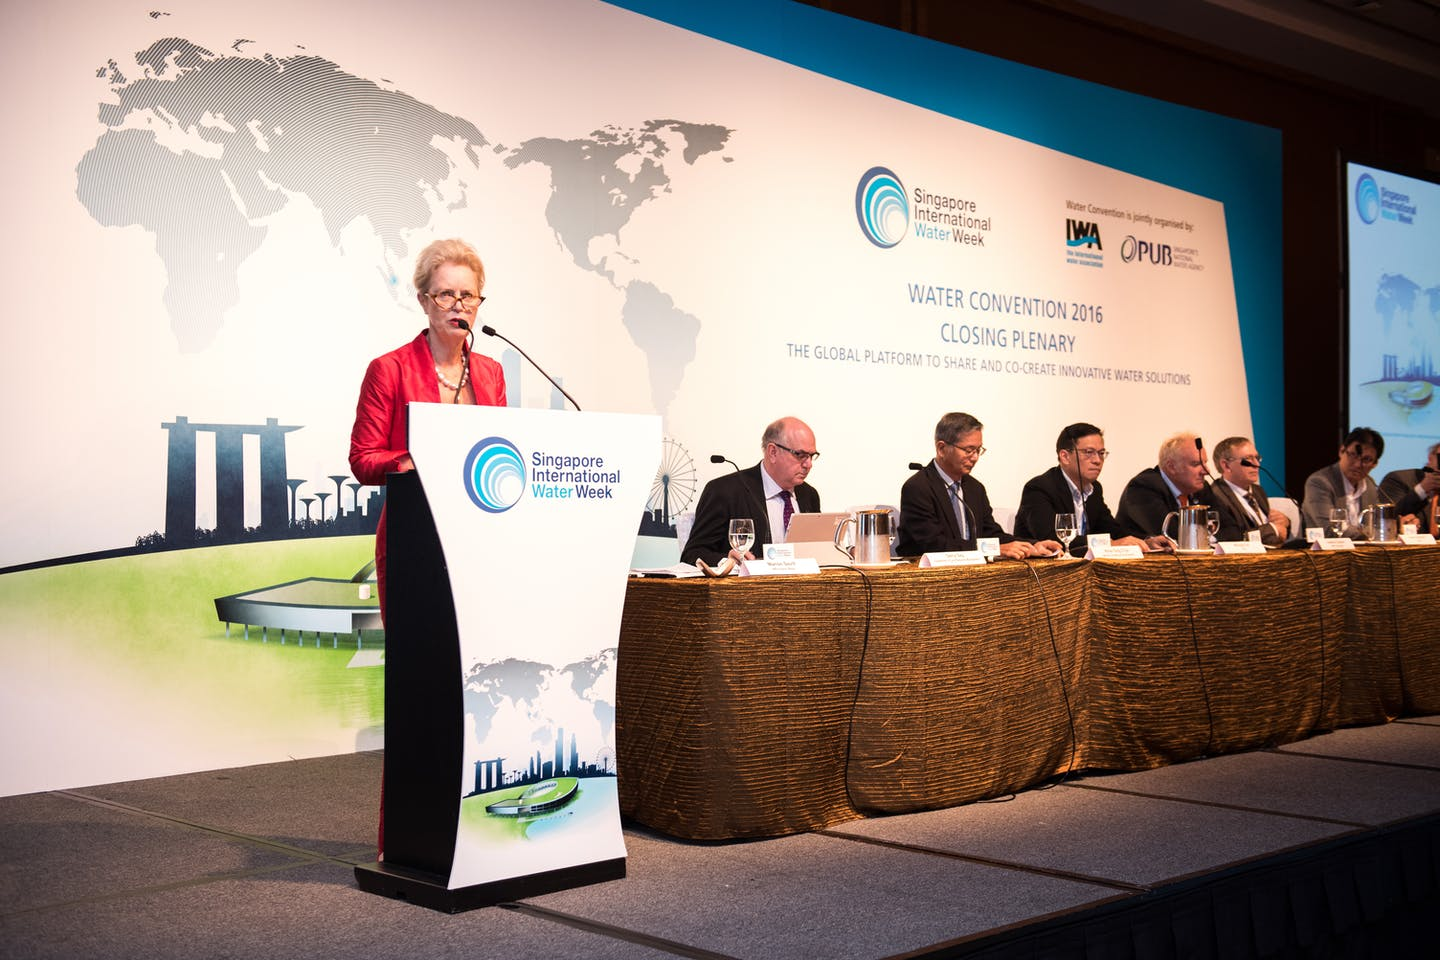 The closing plenary at the Water Convention. Image: SIWW